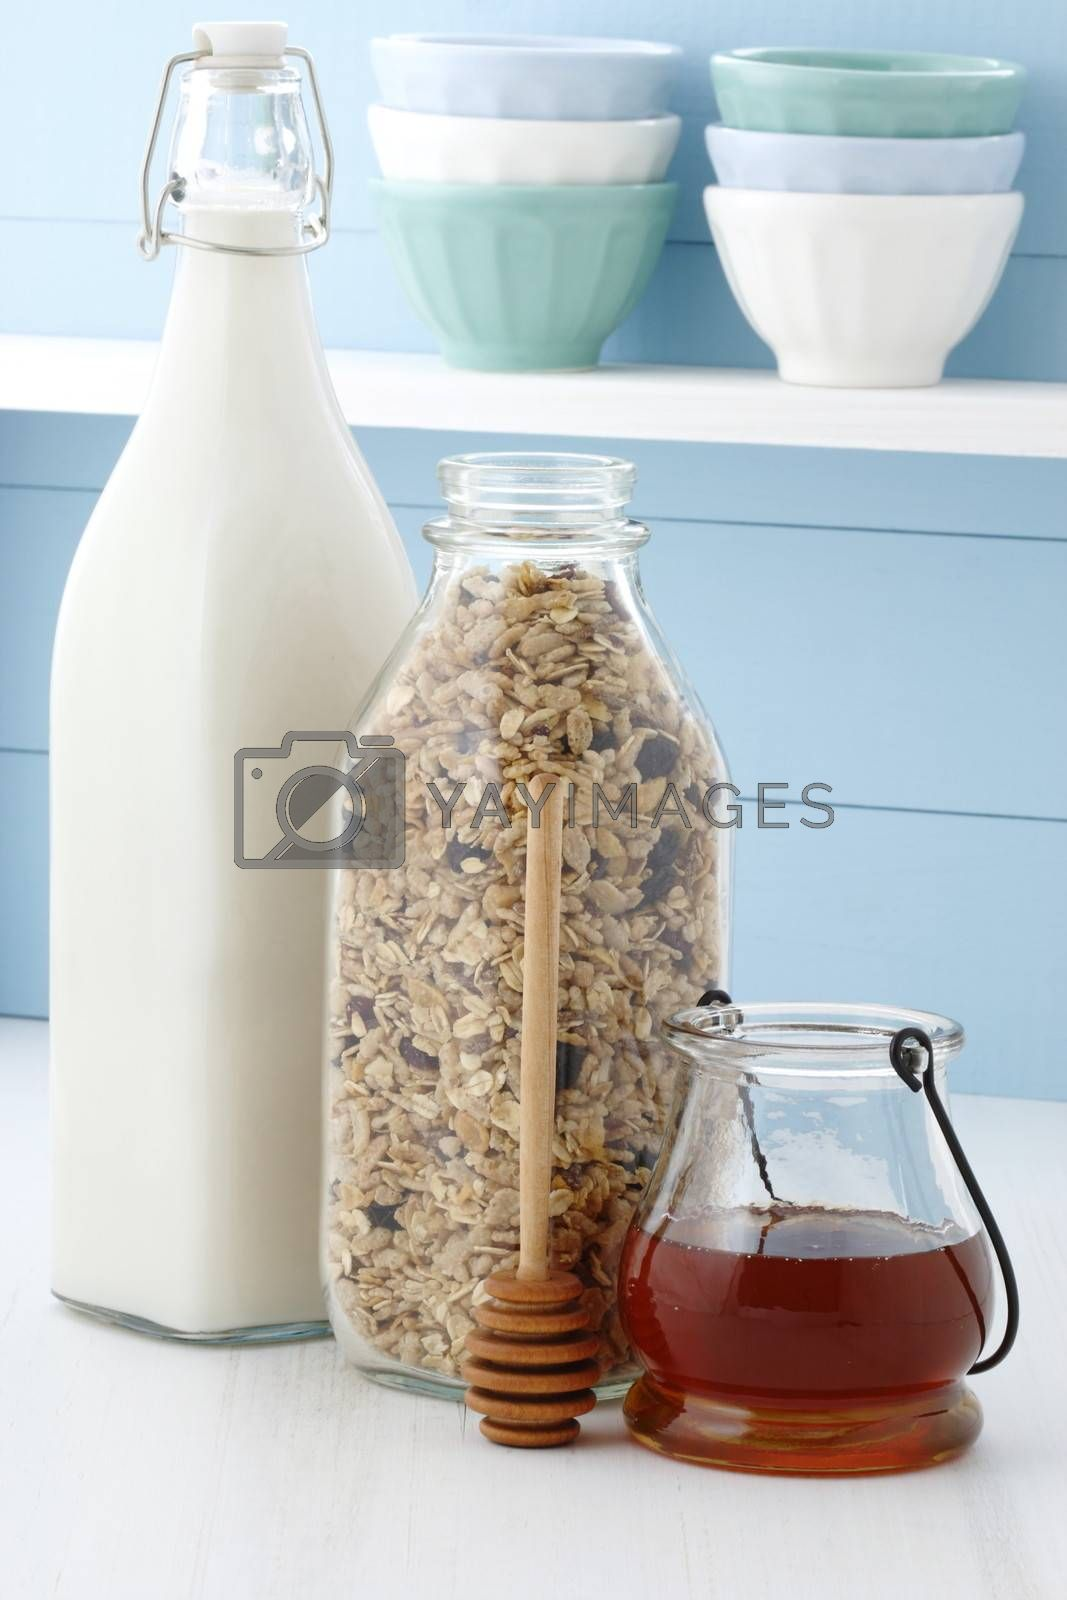 Granola, delicious and healthy breakfast, meal or snack food; popular around the world, and often eaten in combination with yogurt or milk.